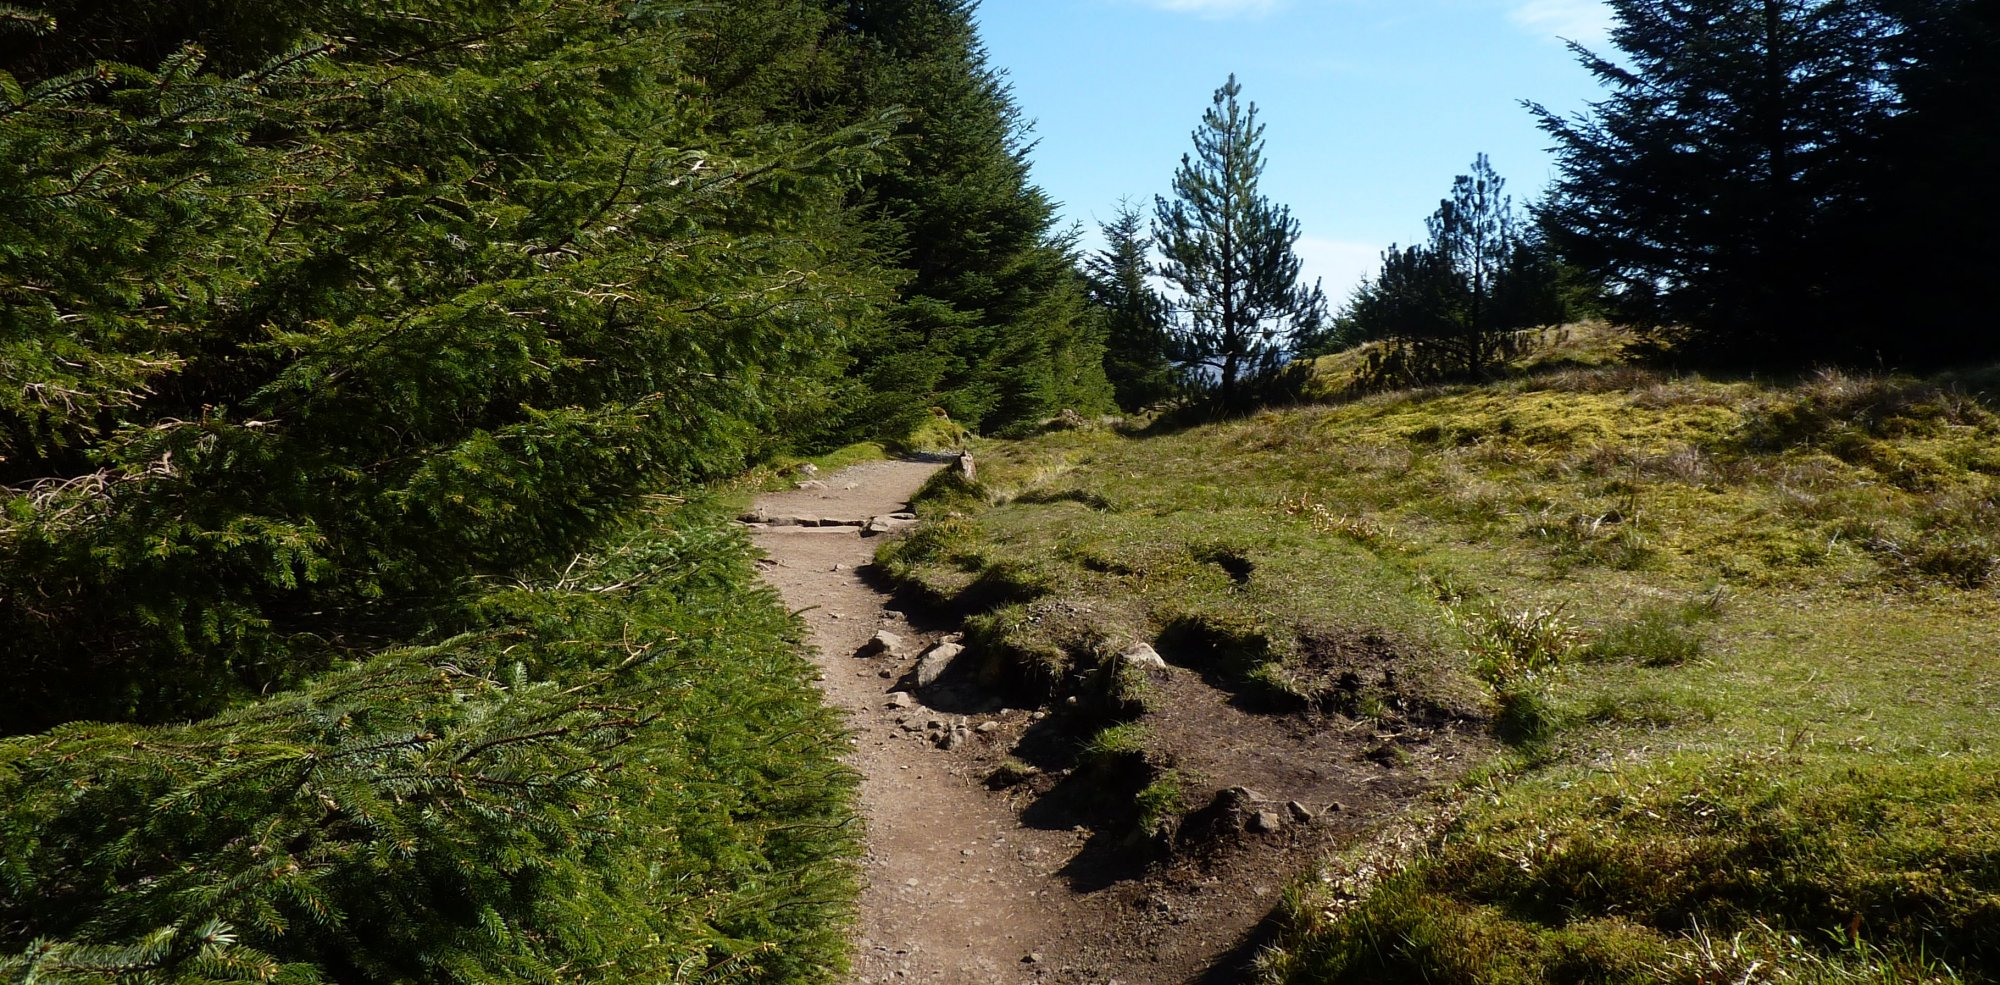 Following the lovely path through the trees down from the Old Man of Storr to the car park